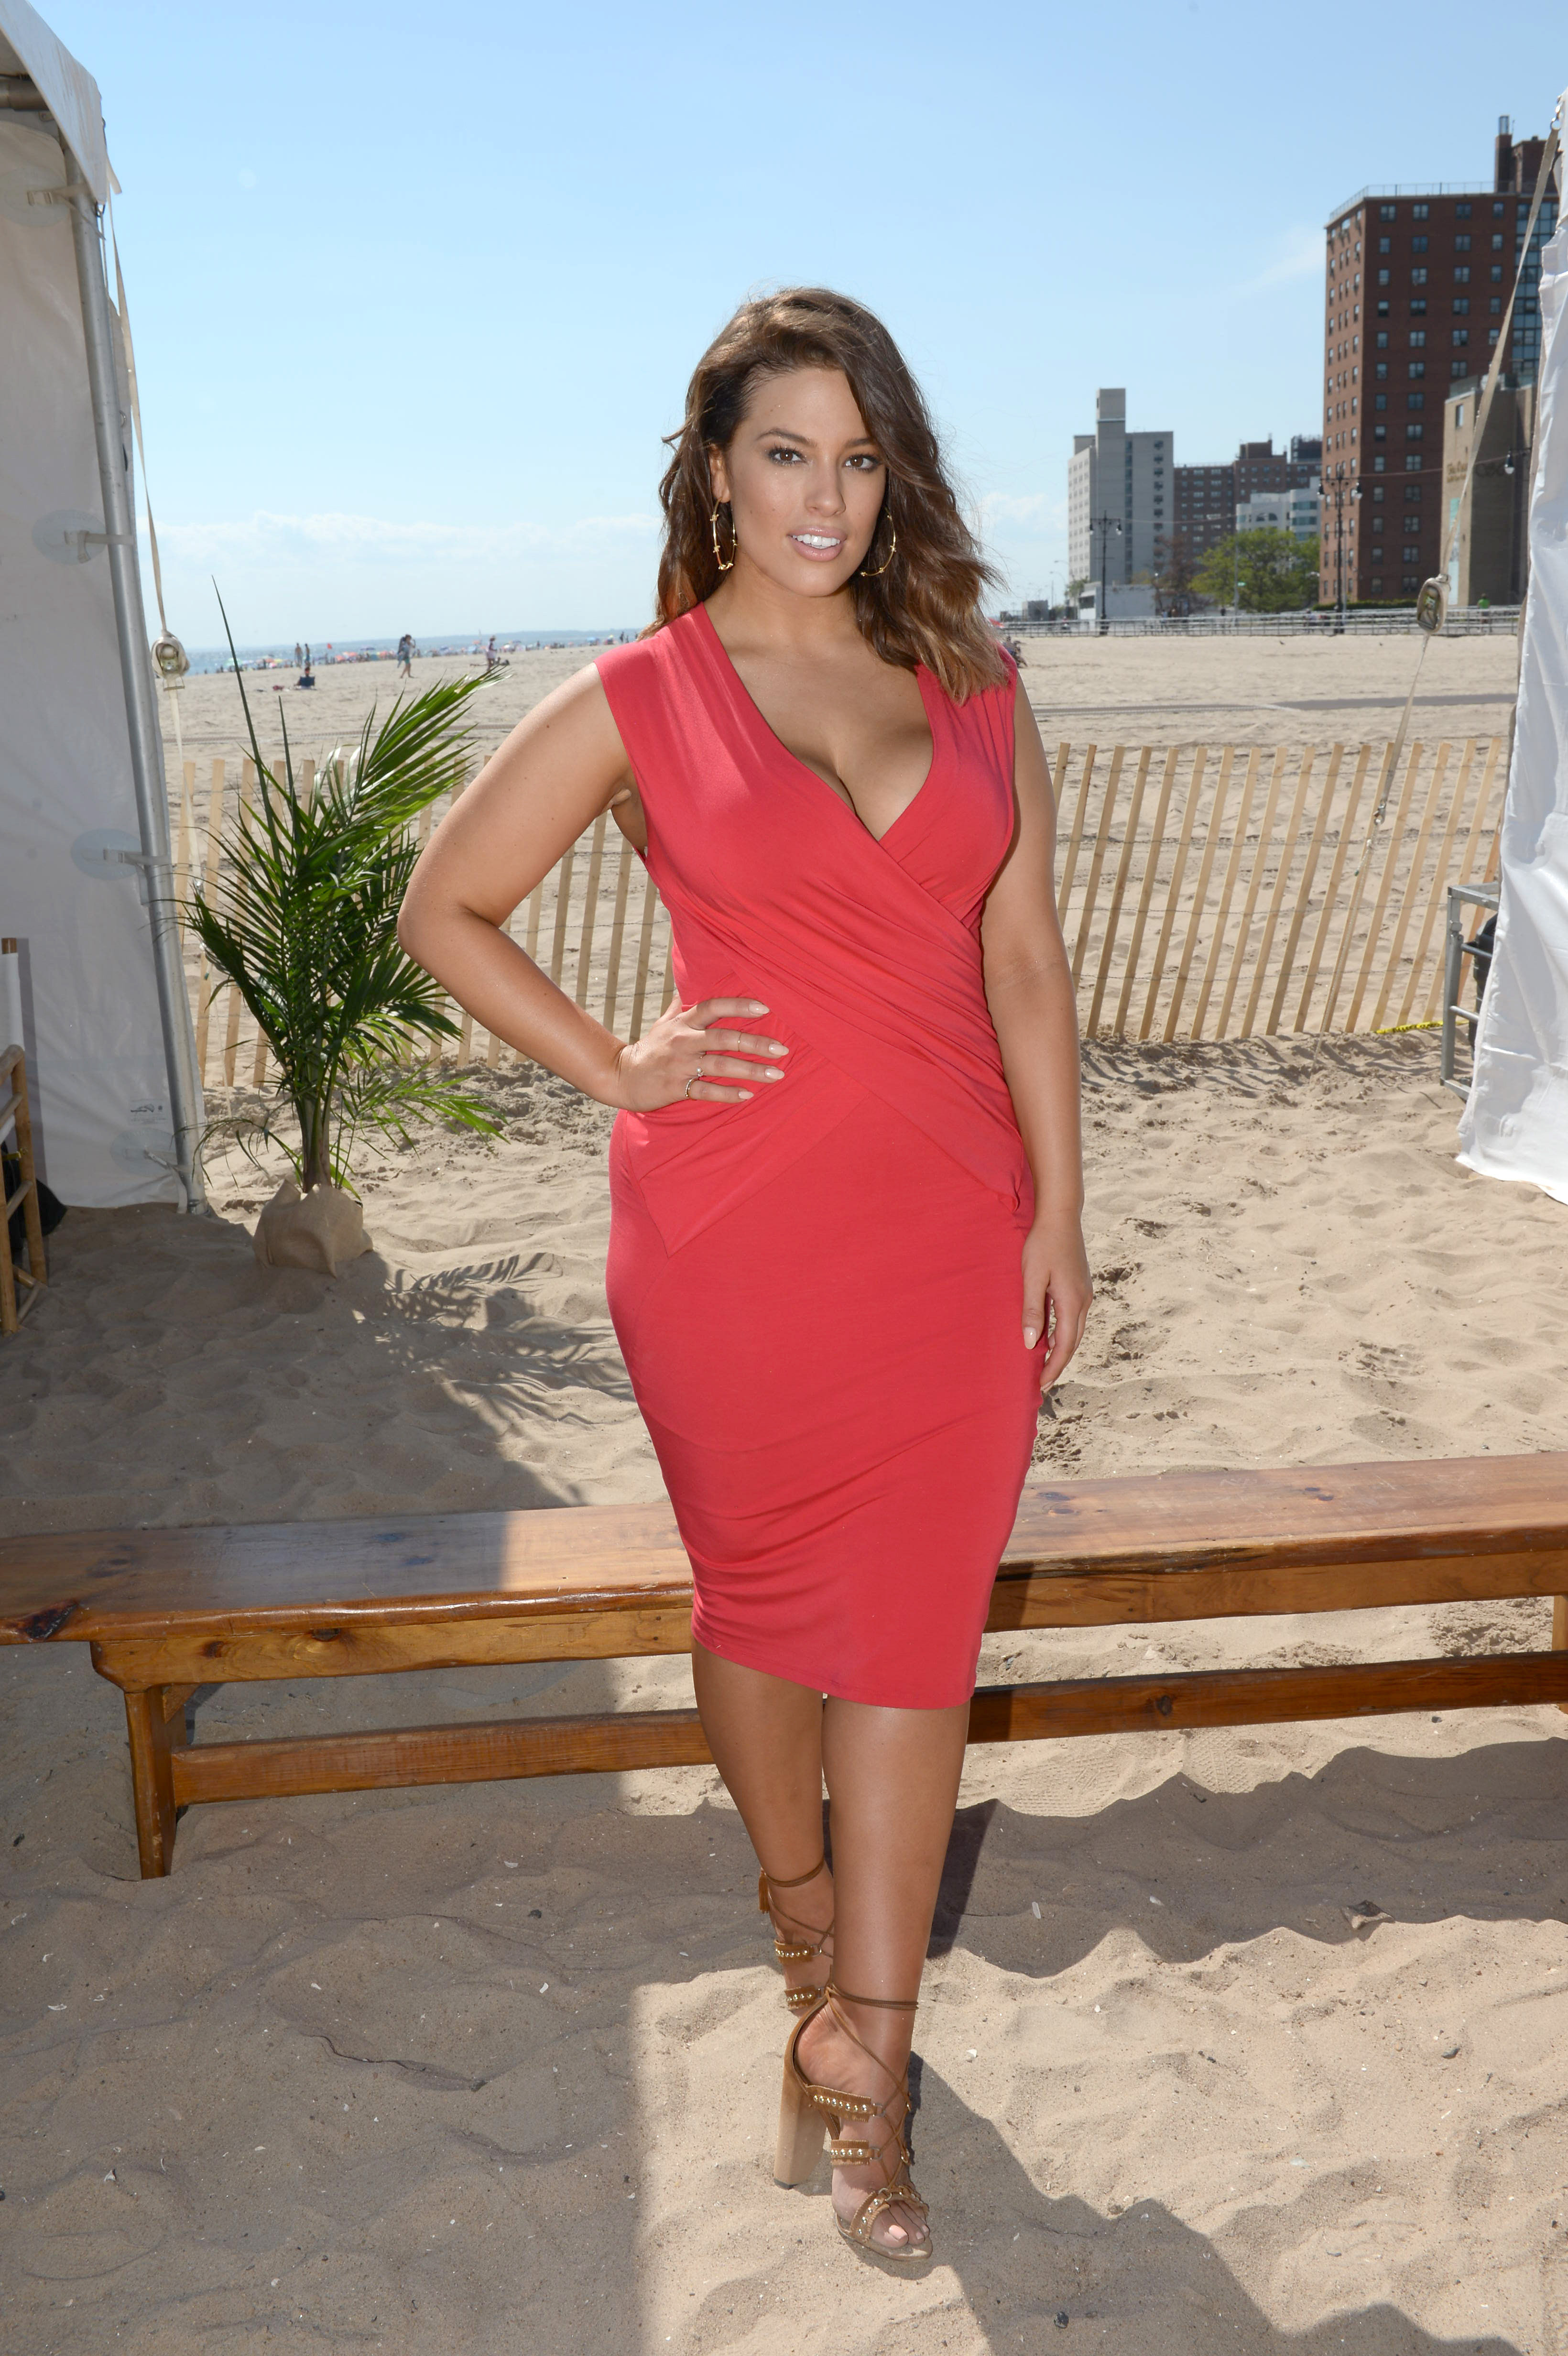 The Fitness Clothing Brands Ashley Graham Swears By